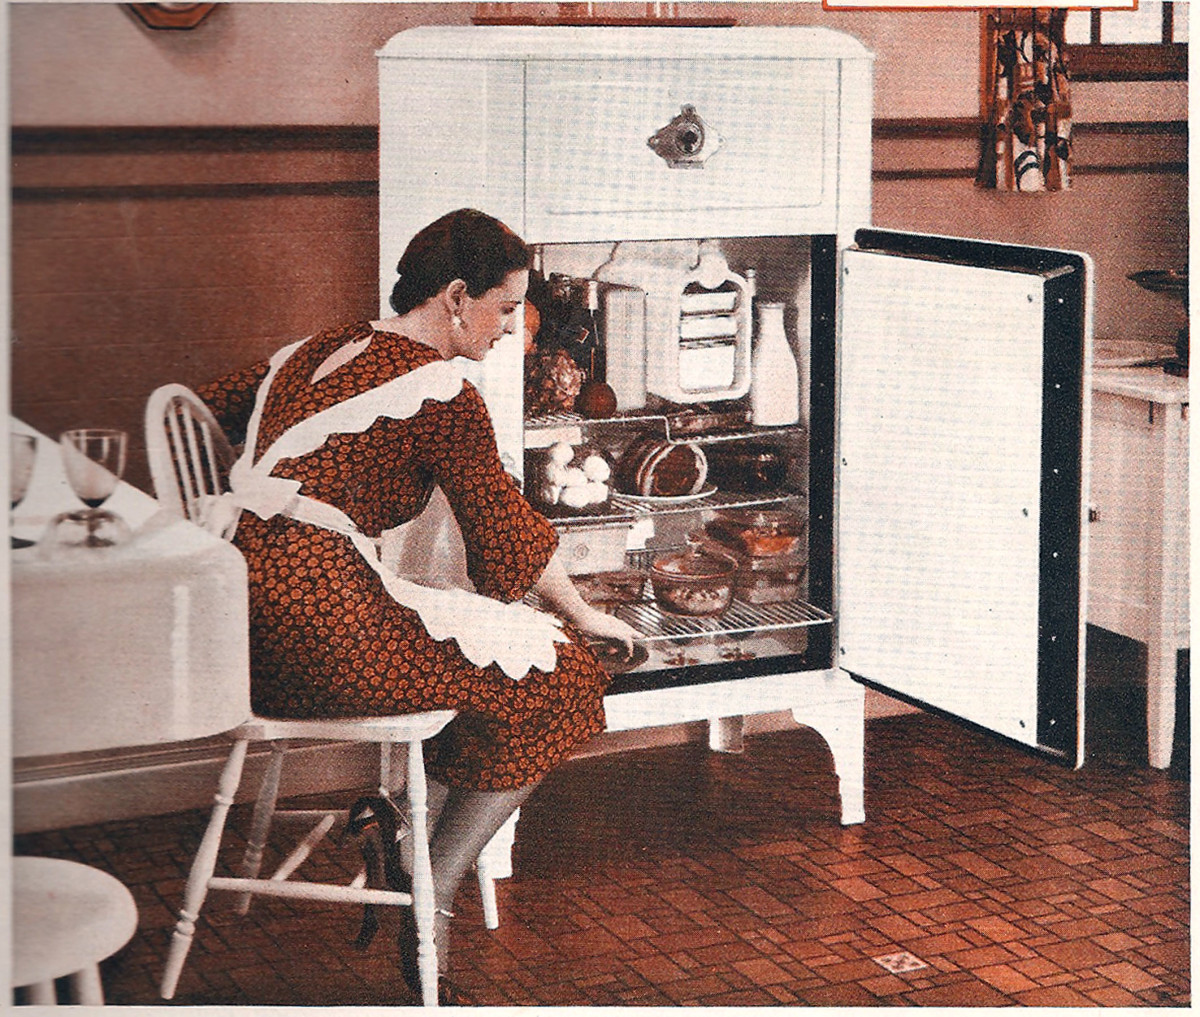 westinghouse refrigerator 1932 vintage kitchen appliances of the 1930s   dengarden  rh   dengarden com